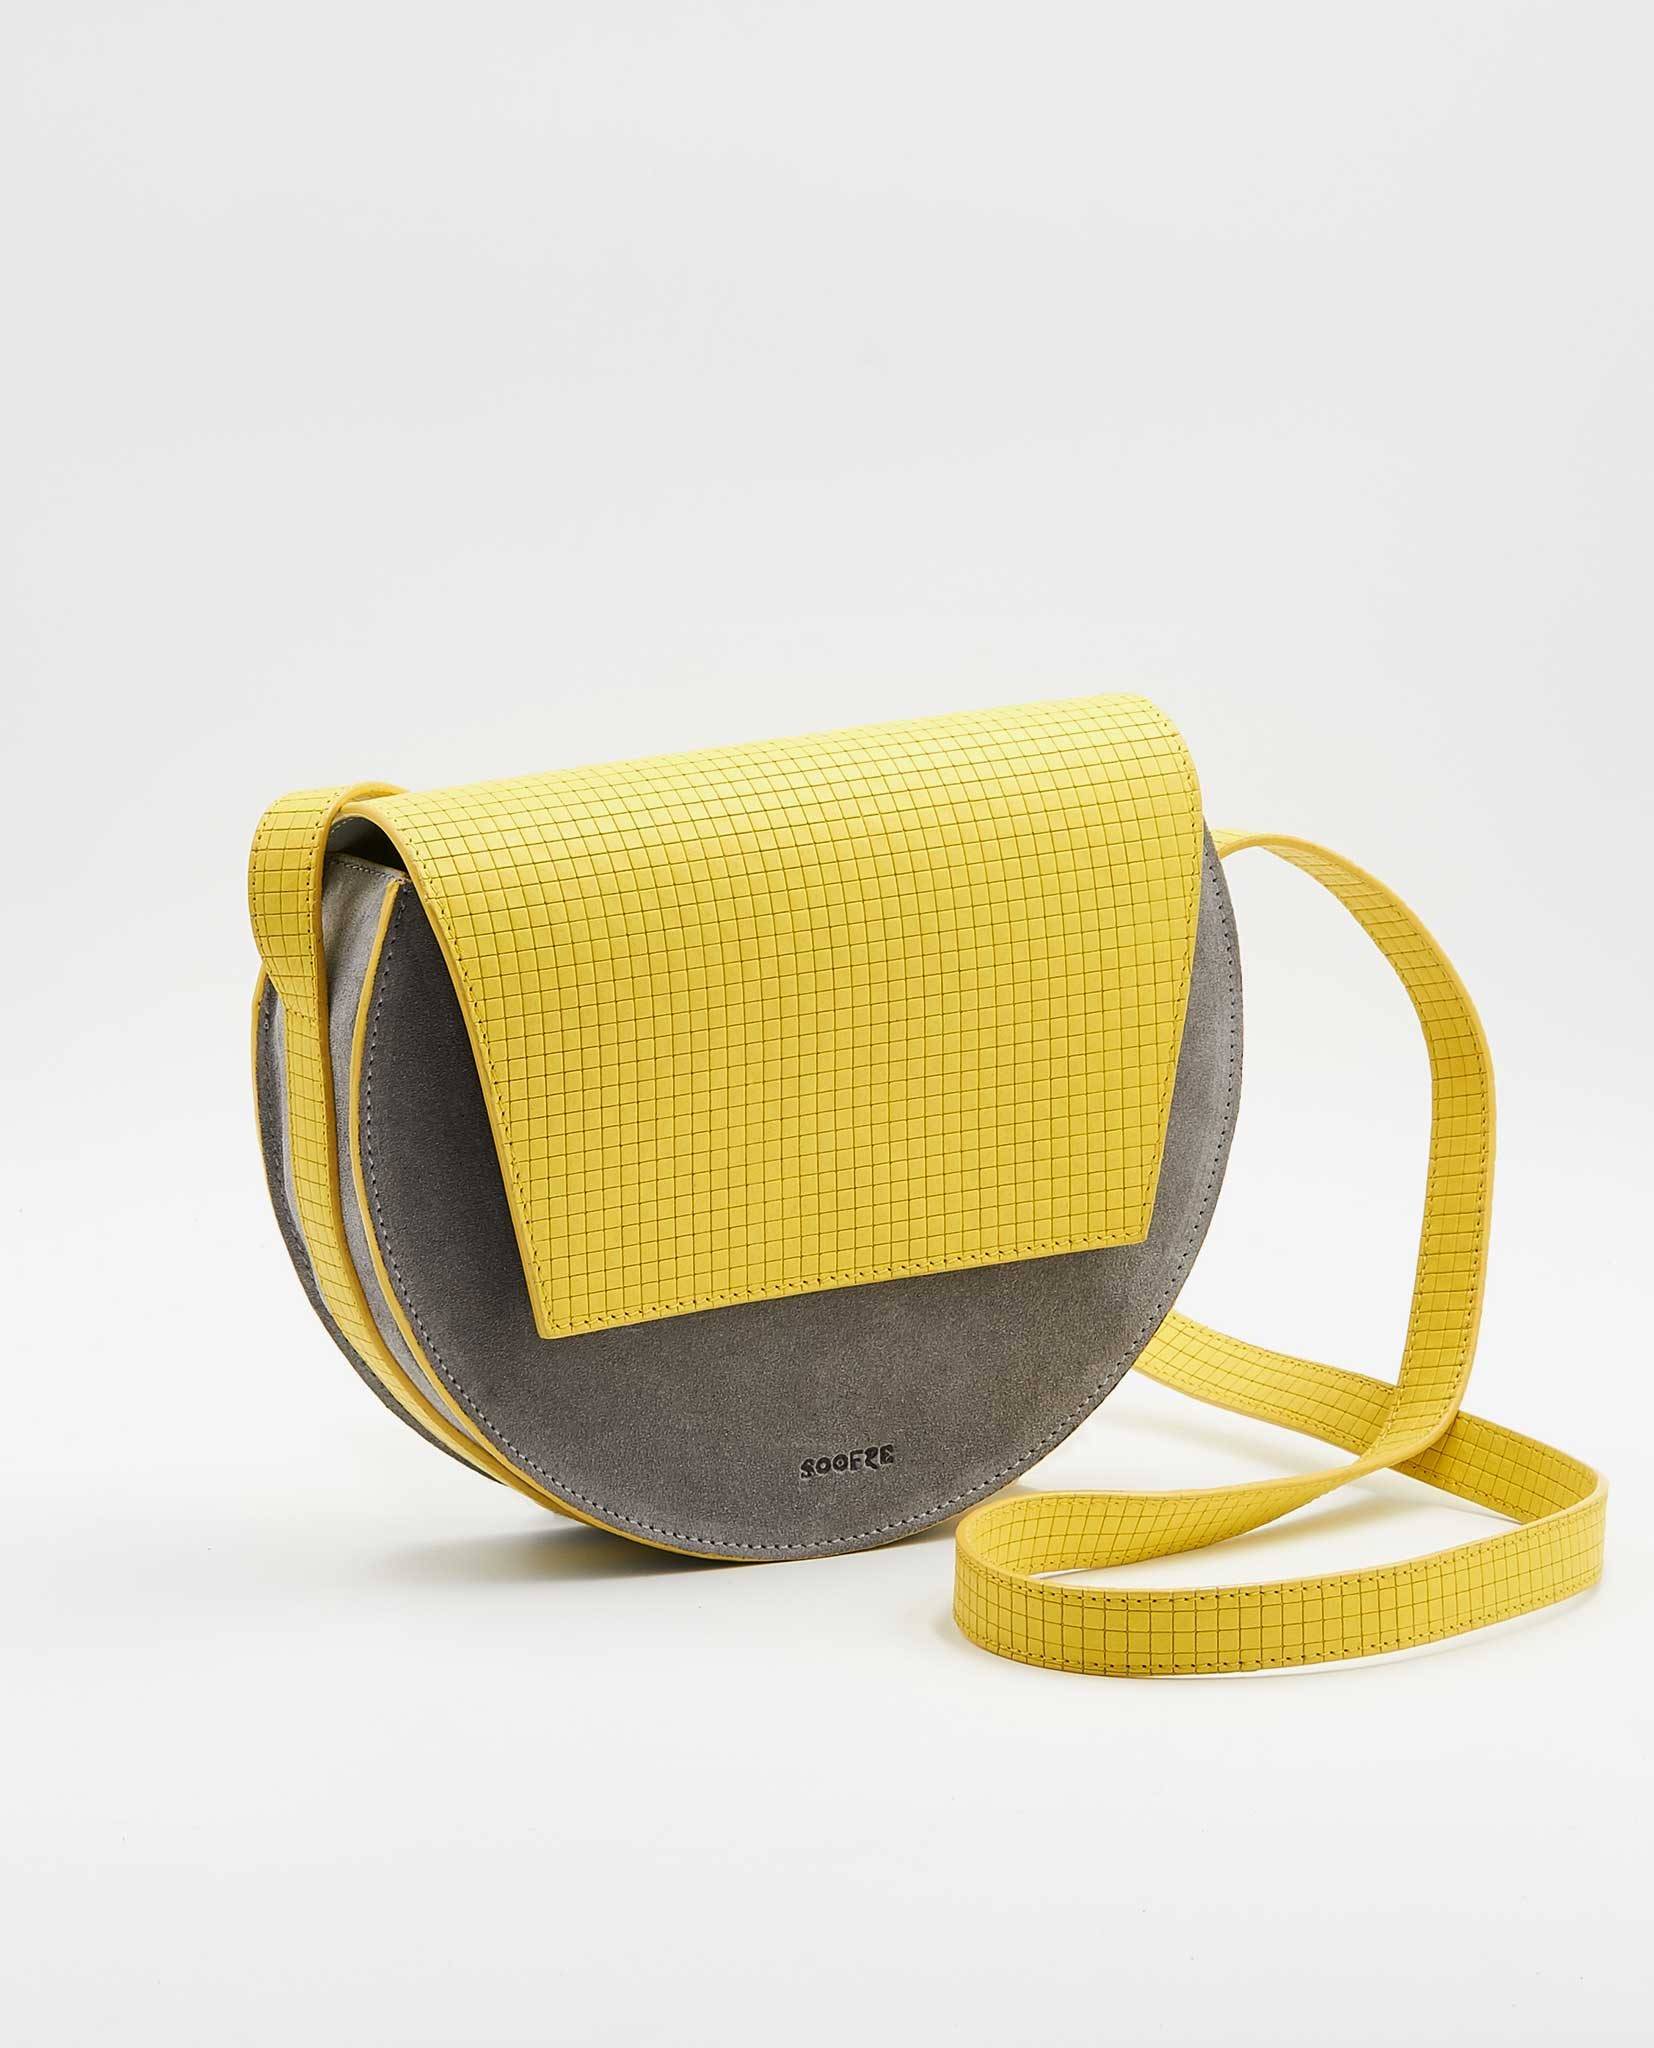 SOOFRE Berlin unique Crossbody Purse squared yellow / dove grey